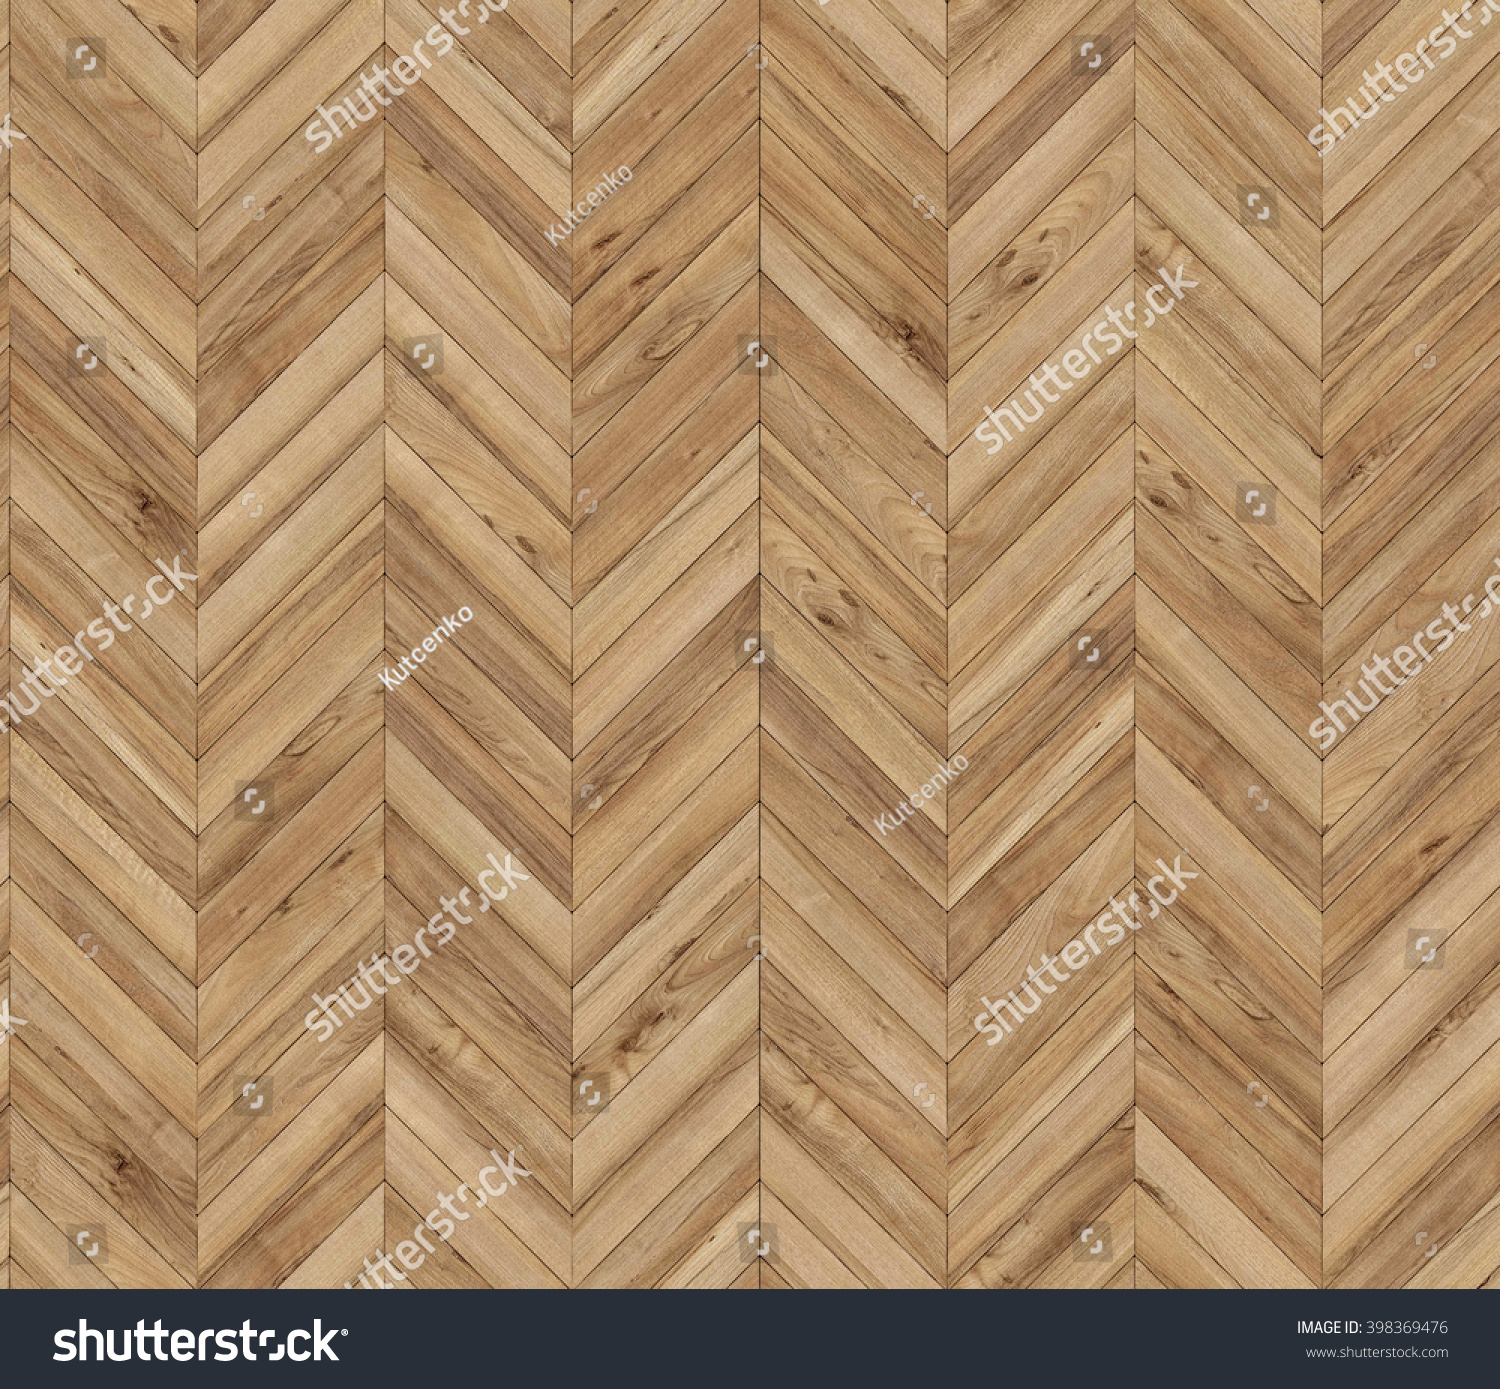 chevron parquet seamless floor texture stock photo 398369476 shutterstock. Black Bedroom Furniture Sets. Home Design Ideas